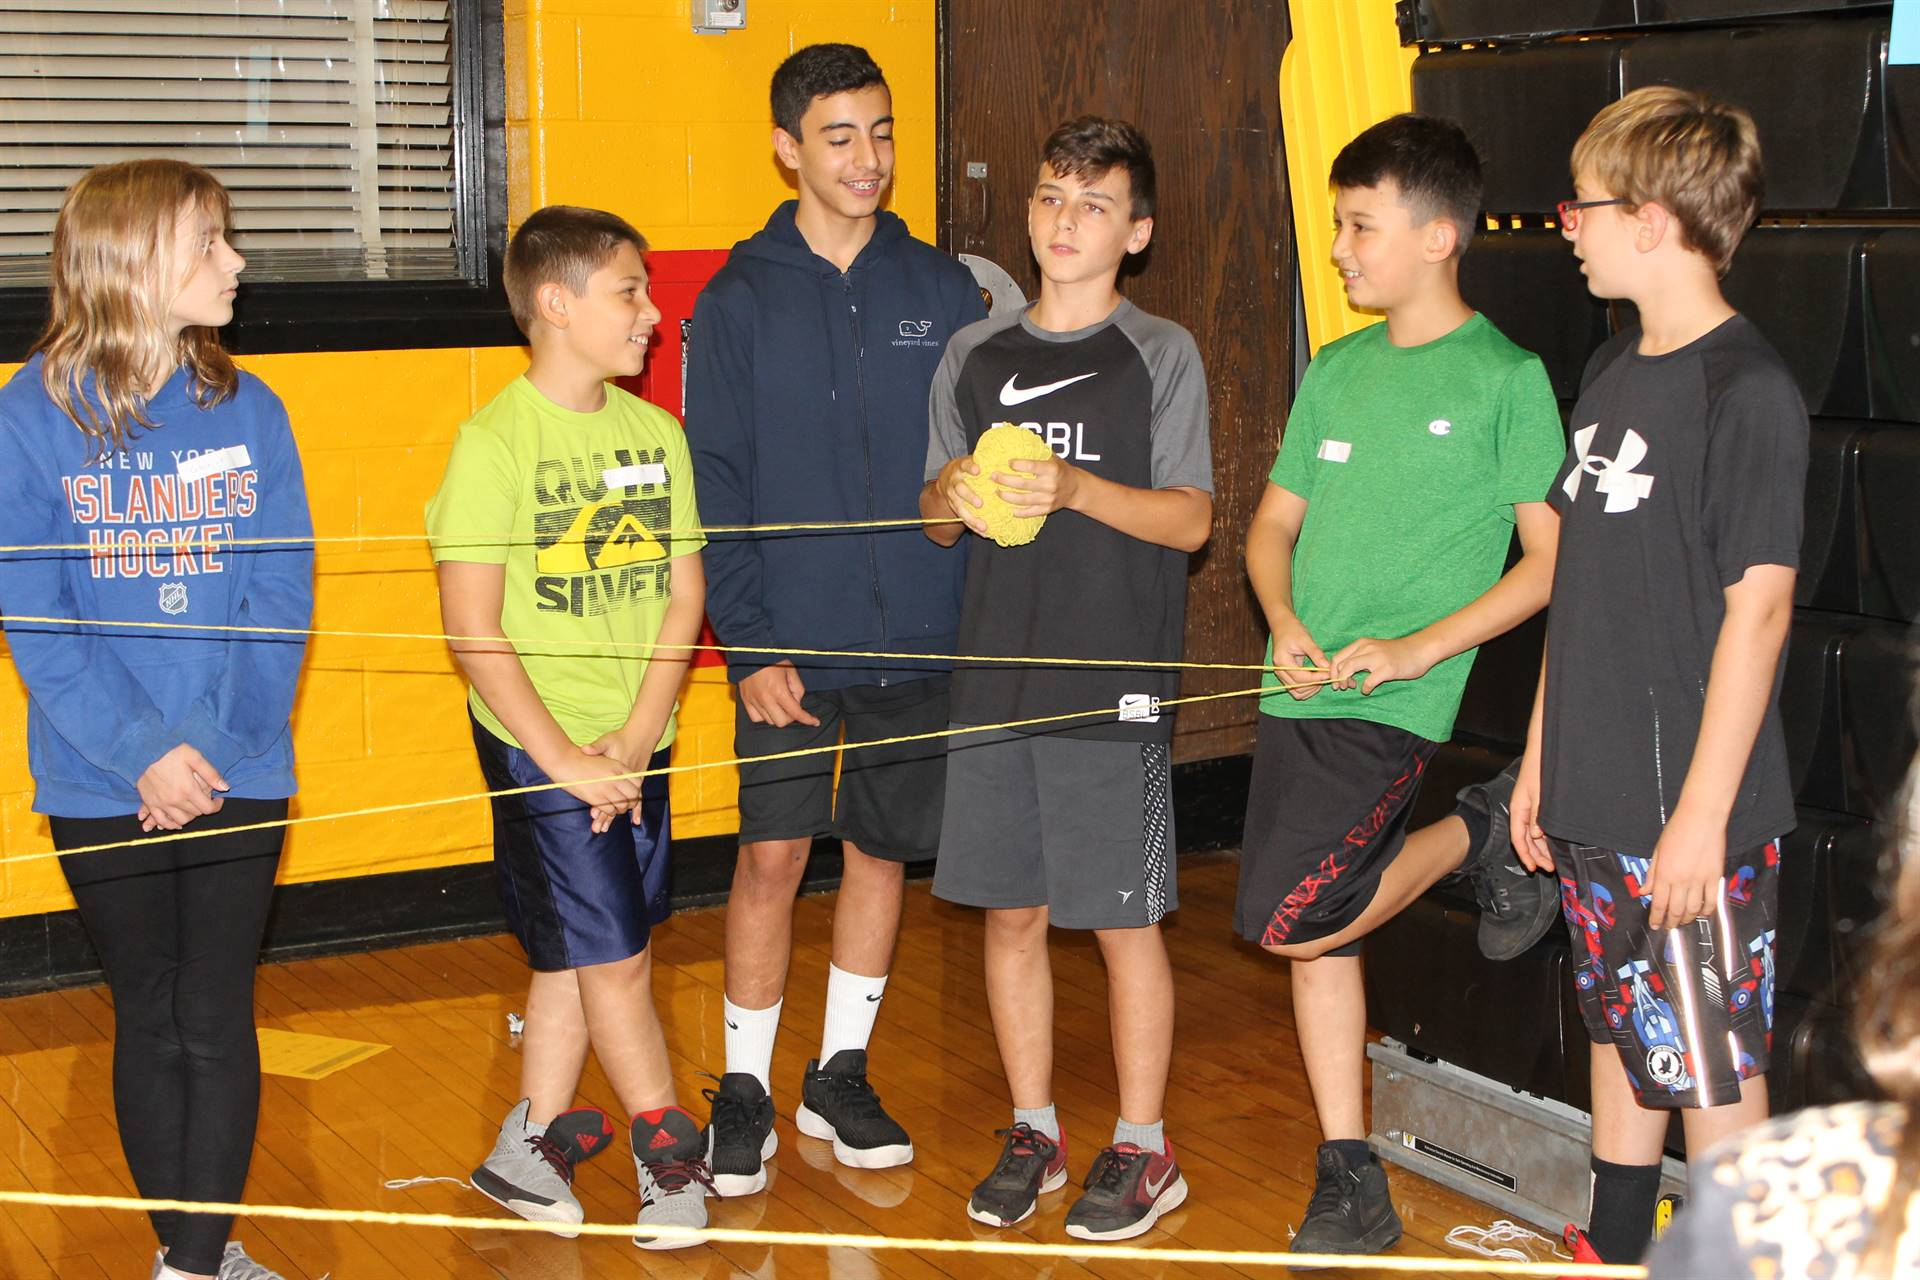 students tossing yarn during a building relationships game